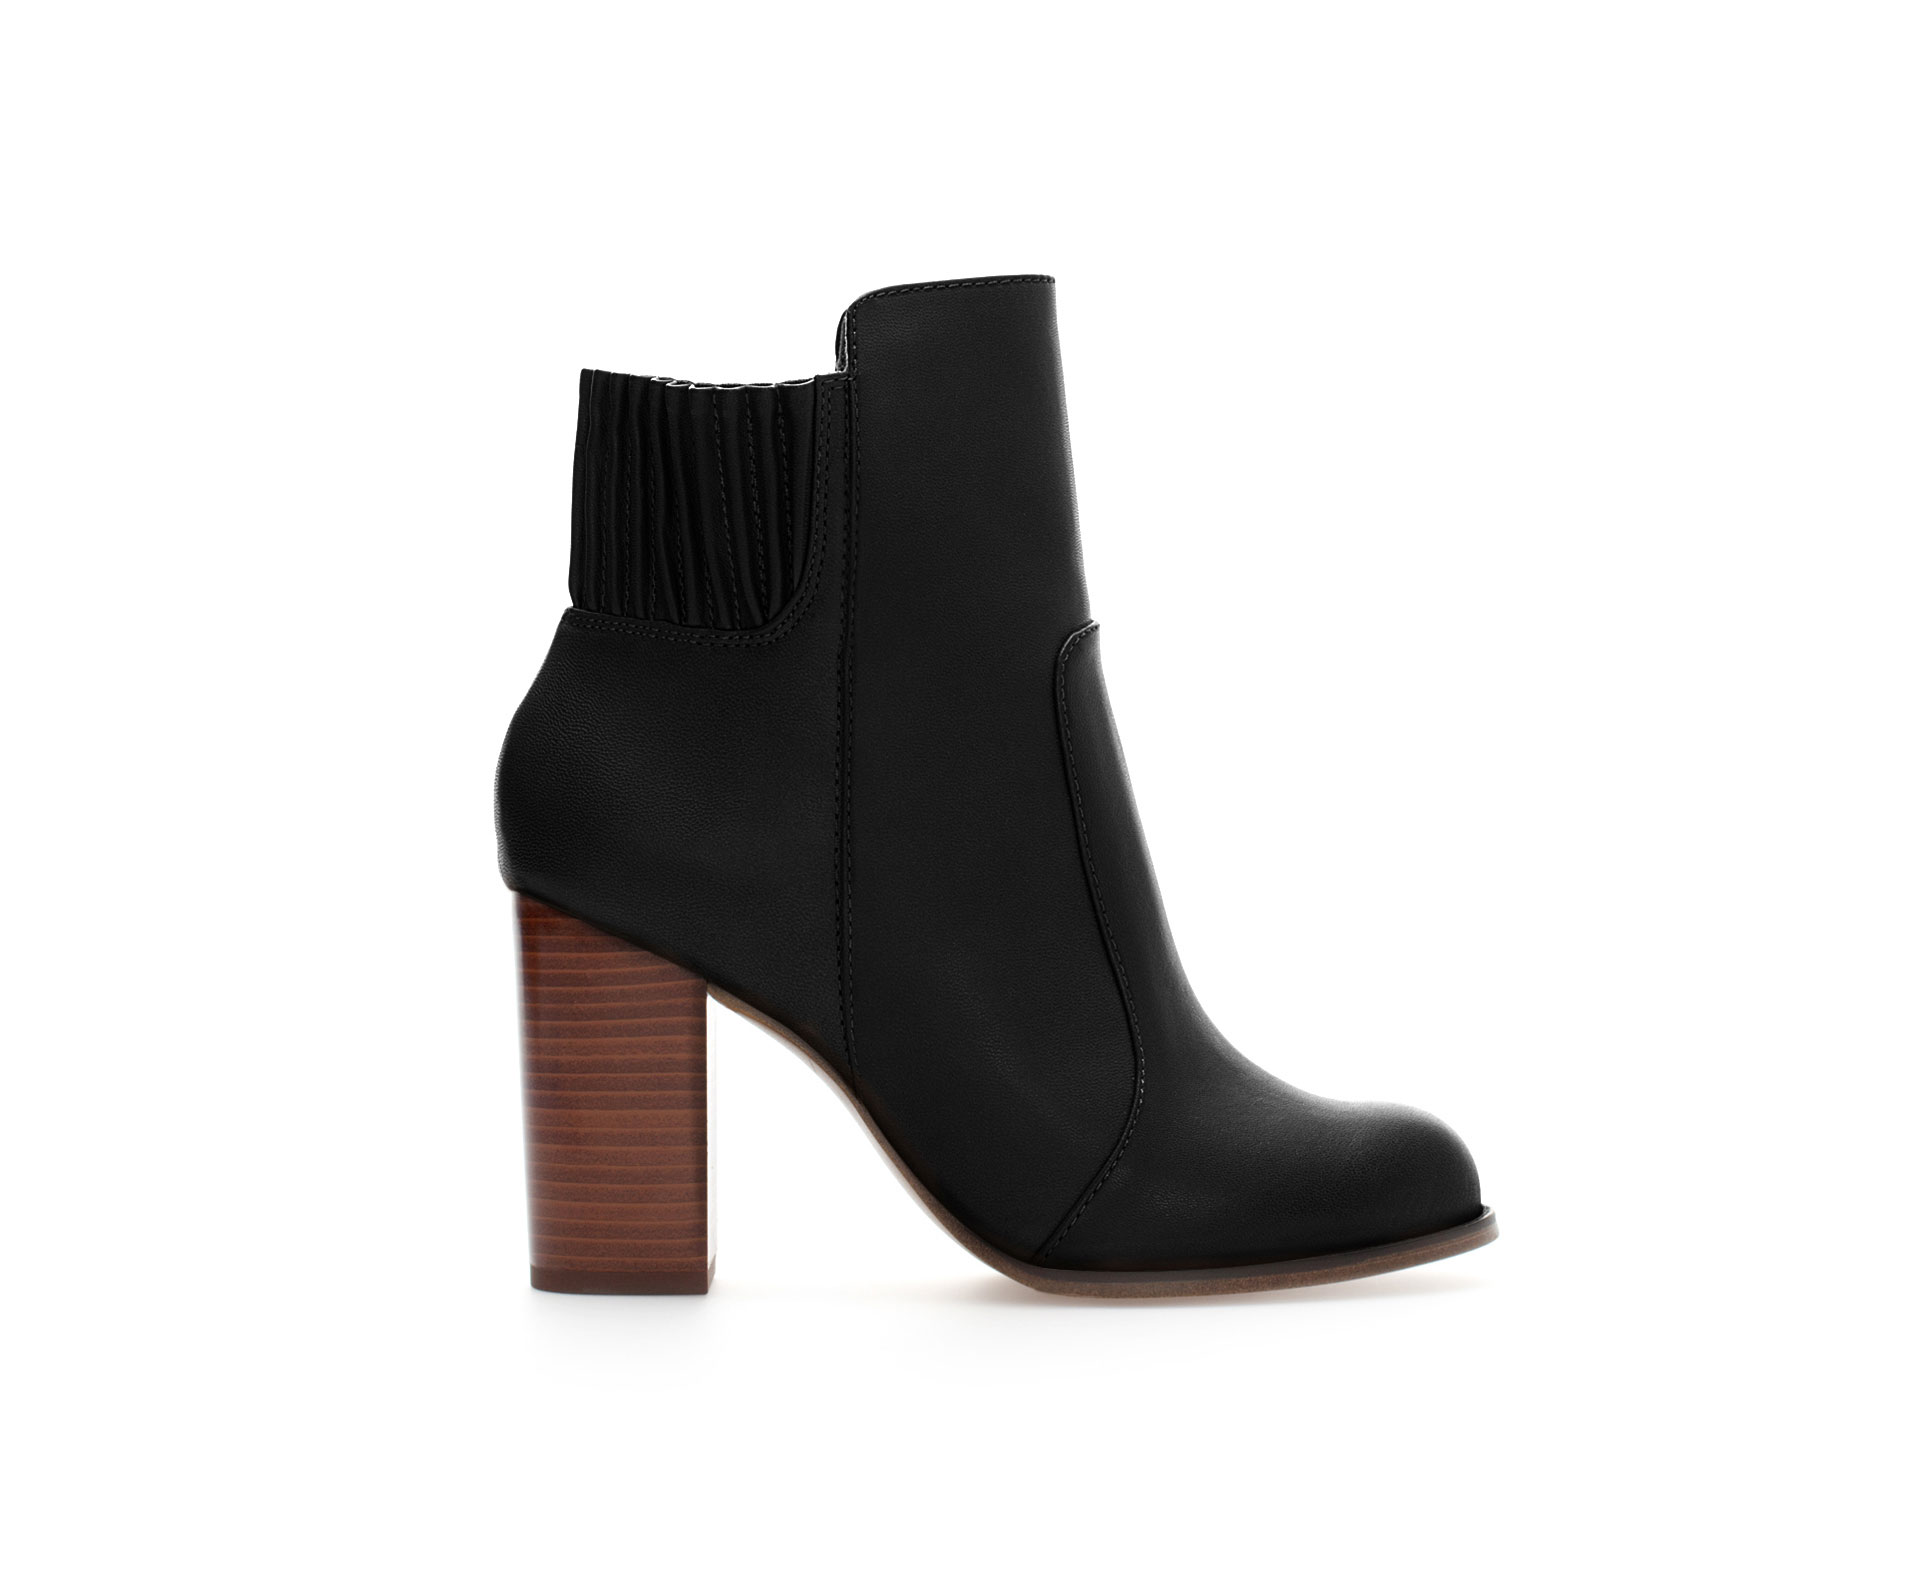 Zara Black Heel Ankle Boot with Elastic Closure in Black | Lyst